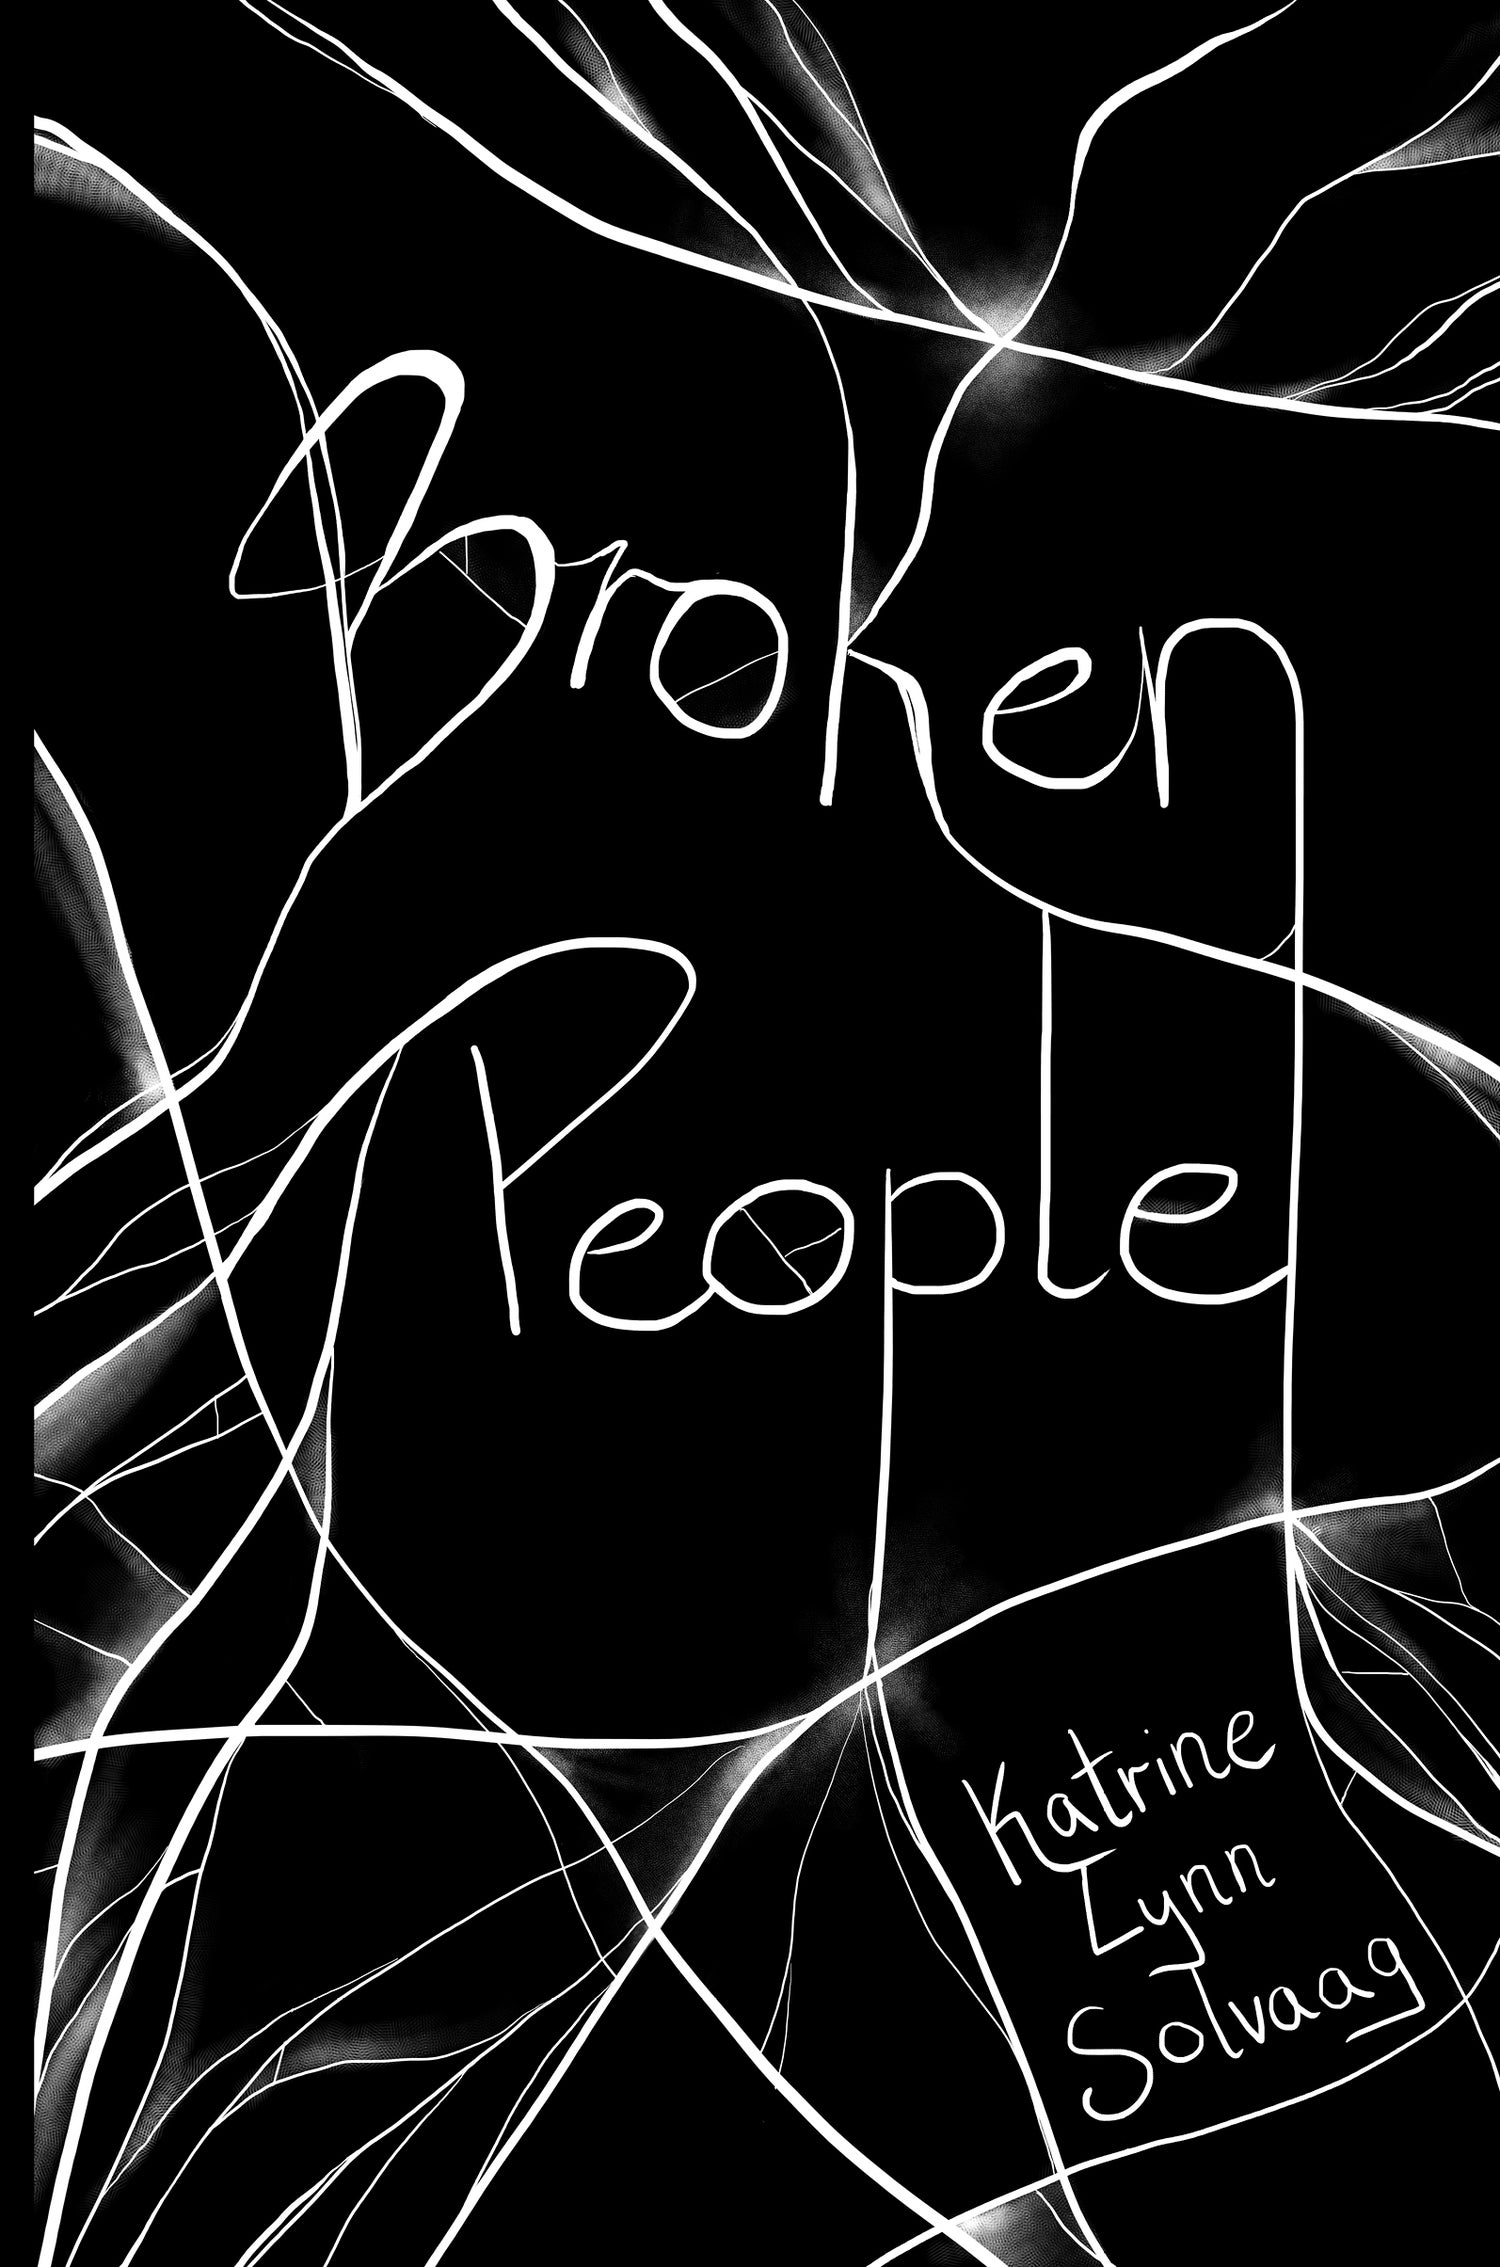 Image of Broken People by Katrine Solvaag